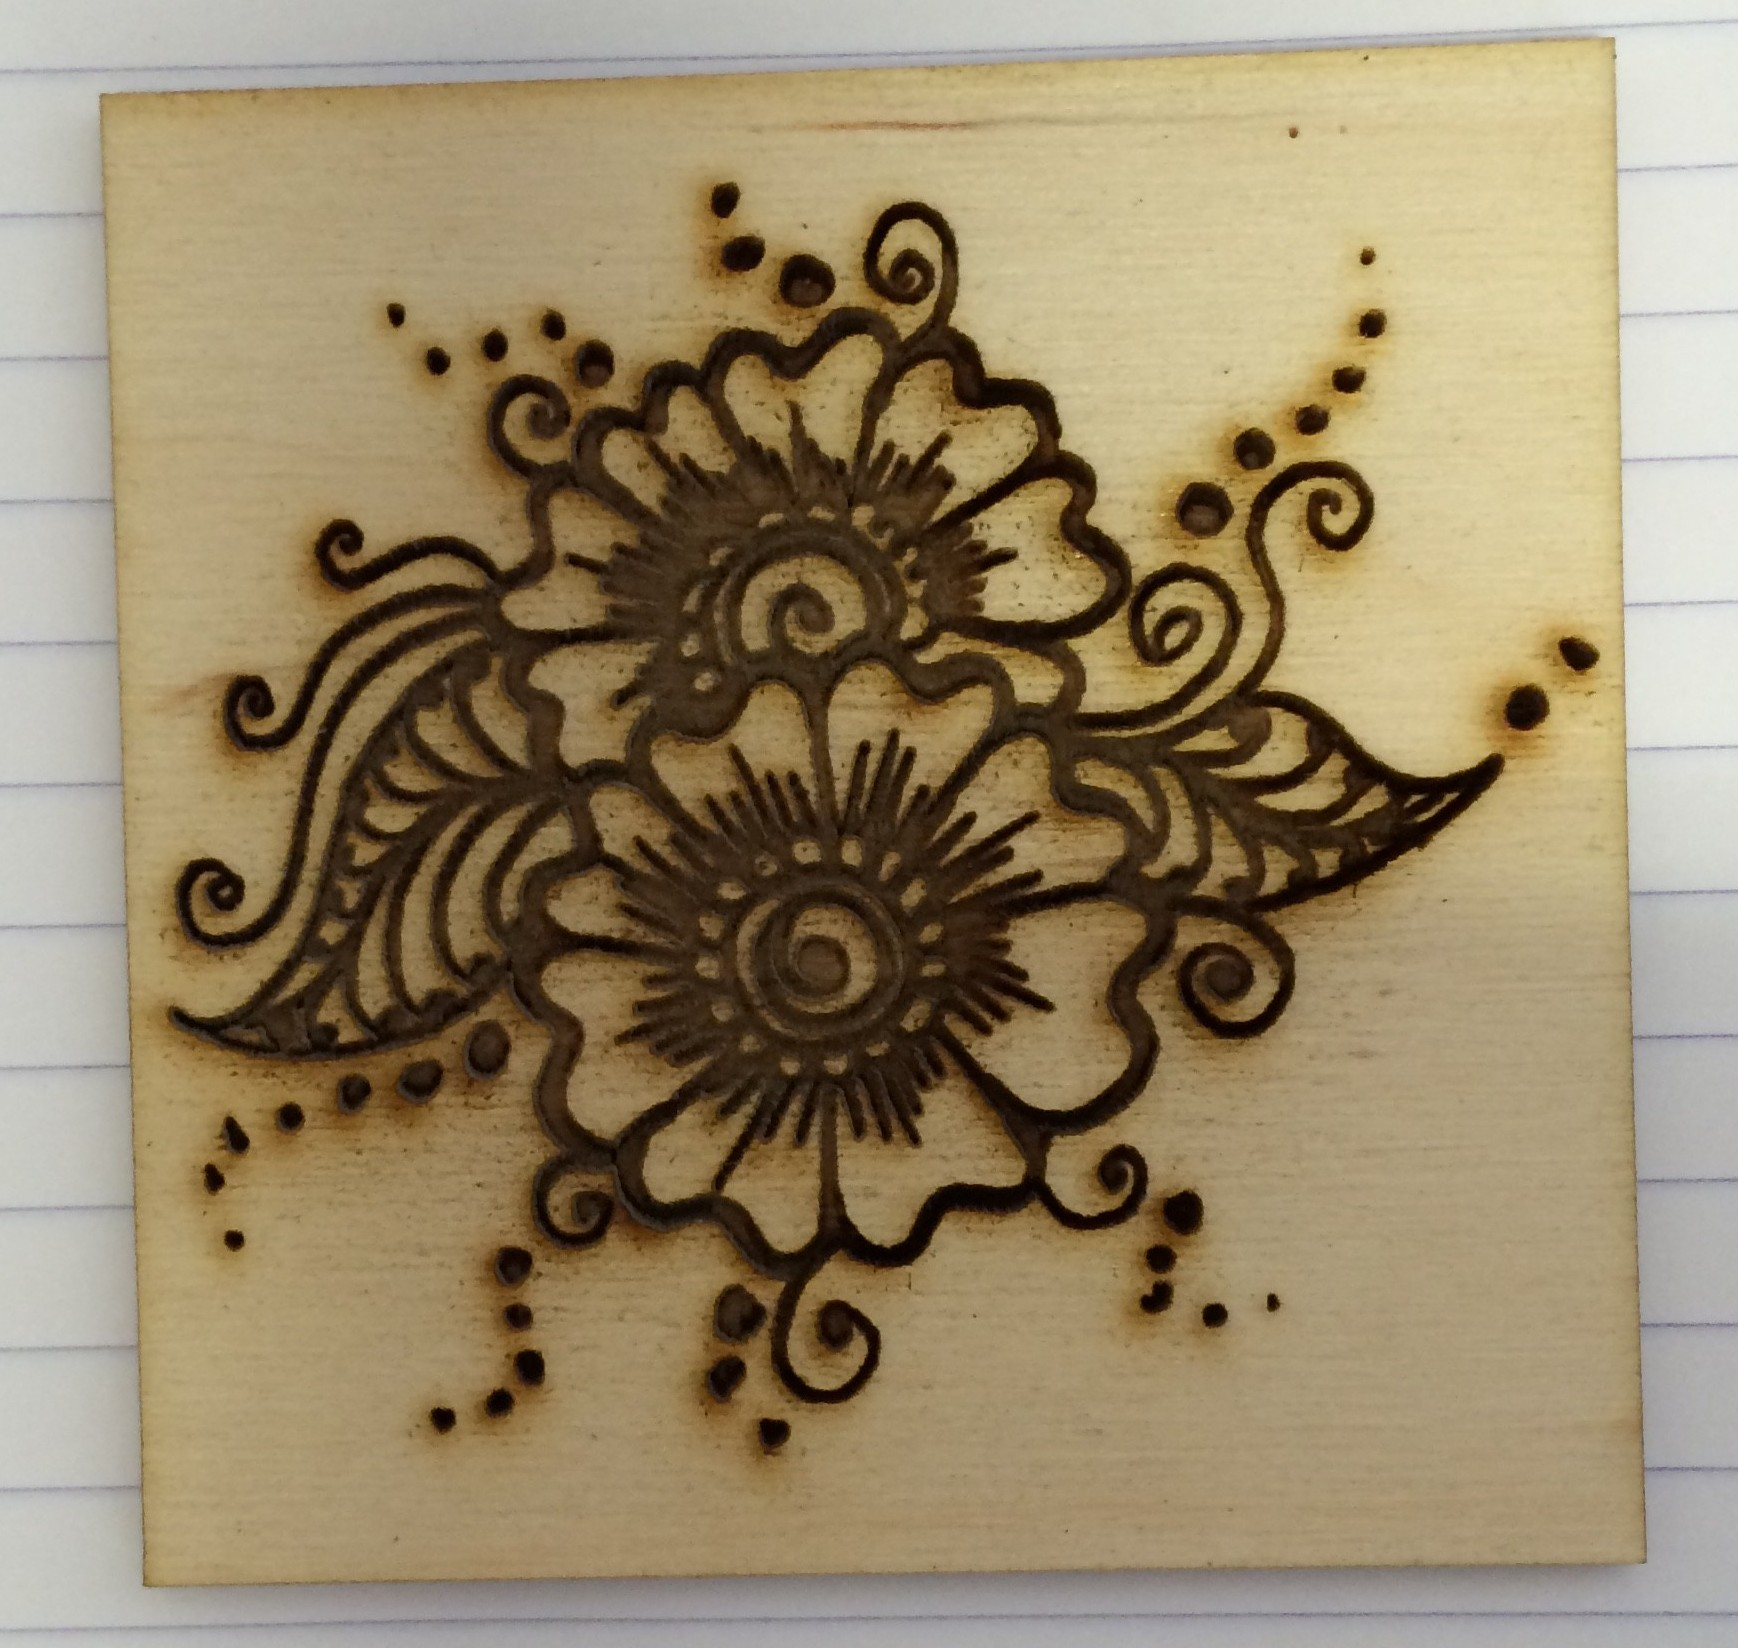 Henna pattern engraved on plywood